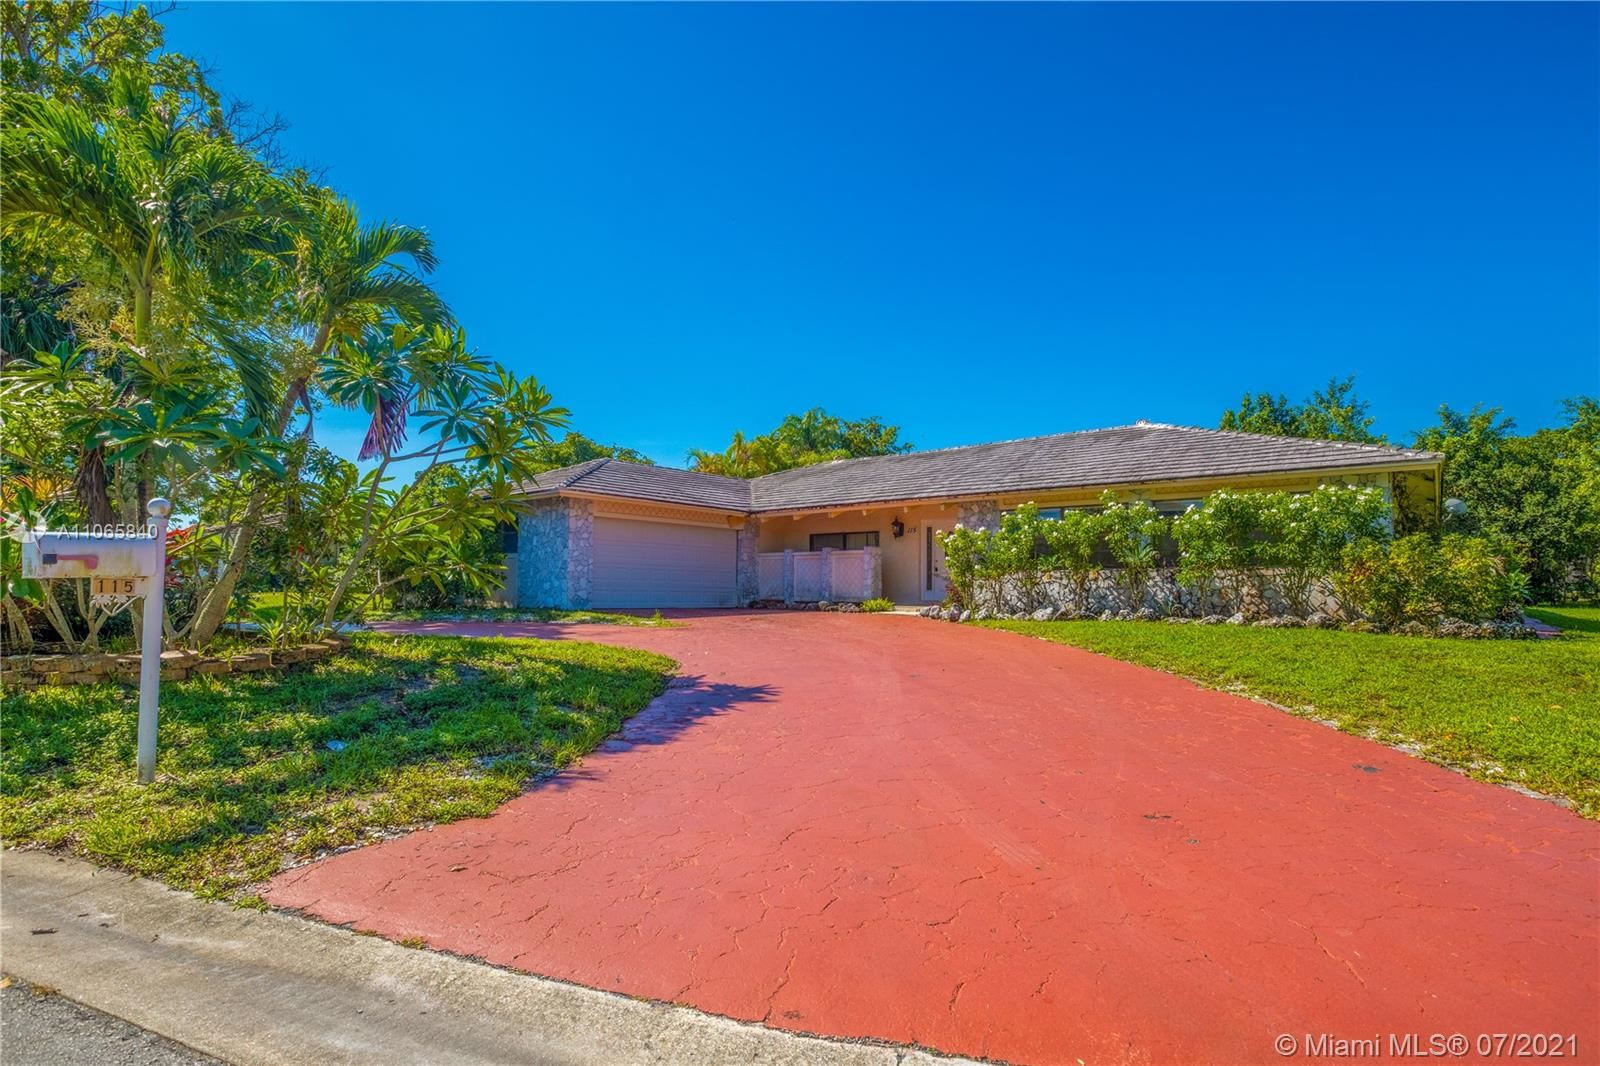 115 NW 100th Ter, Coral Springs, FL 33071 - #: A11065840